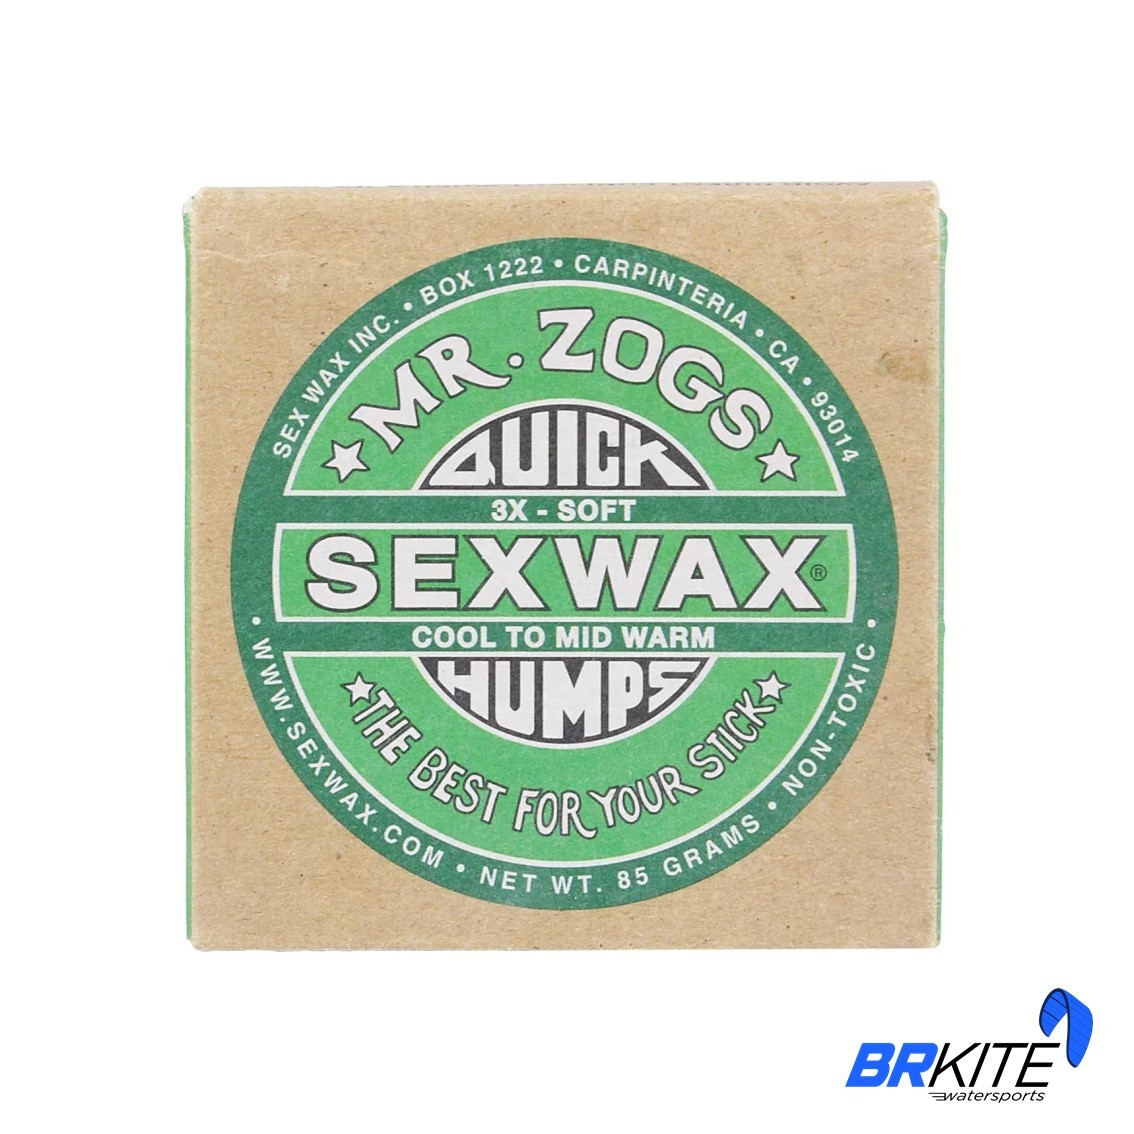 SEXWAX-KIT PARAFINA QUICK HUMPS 3X VERDE COOL MID WARM(3UND)